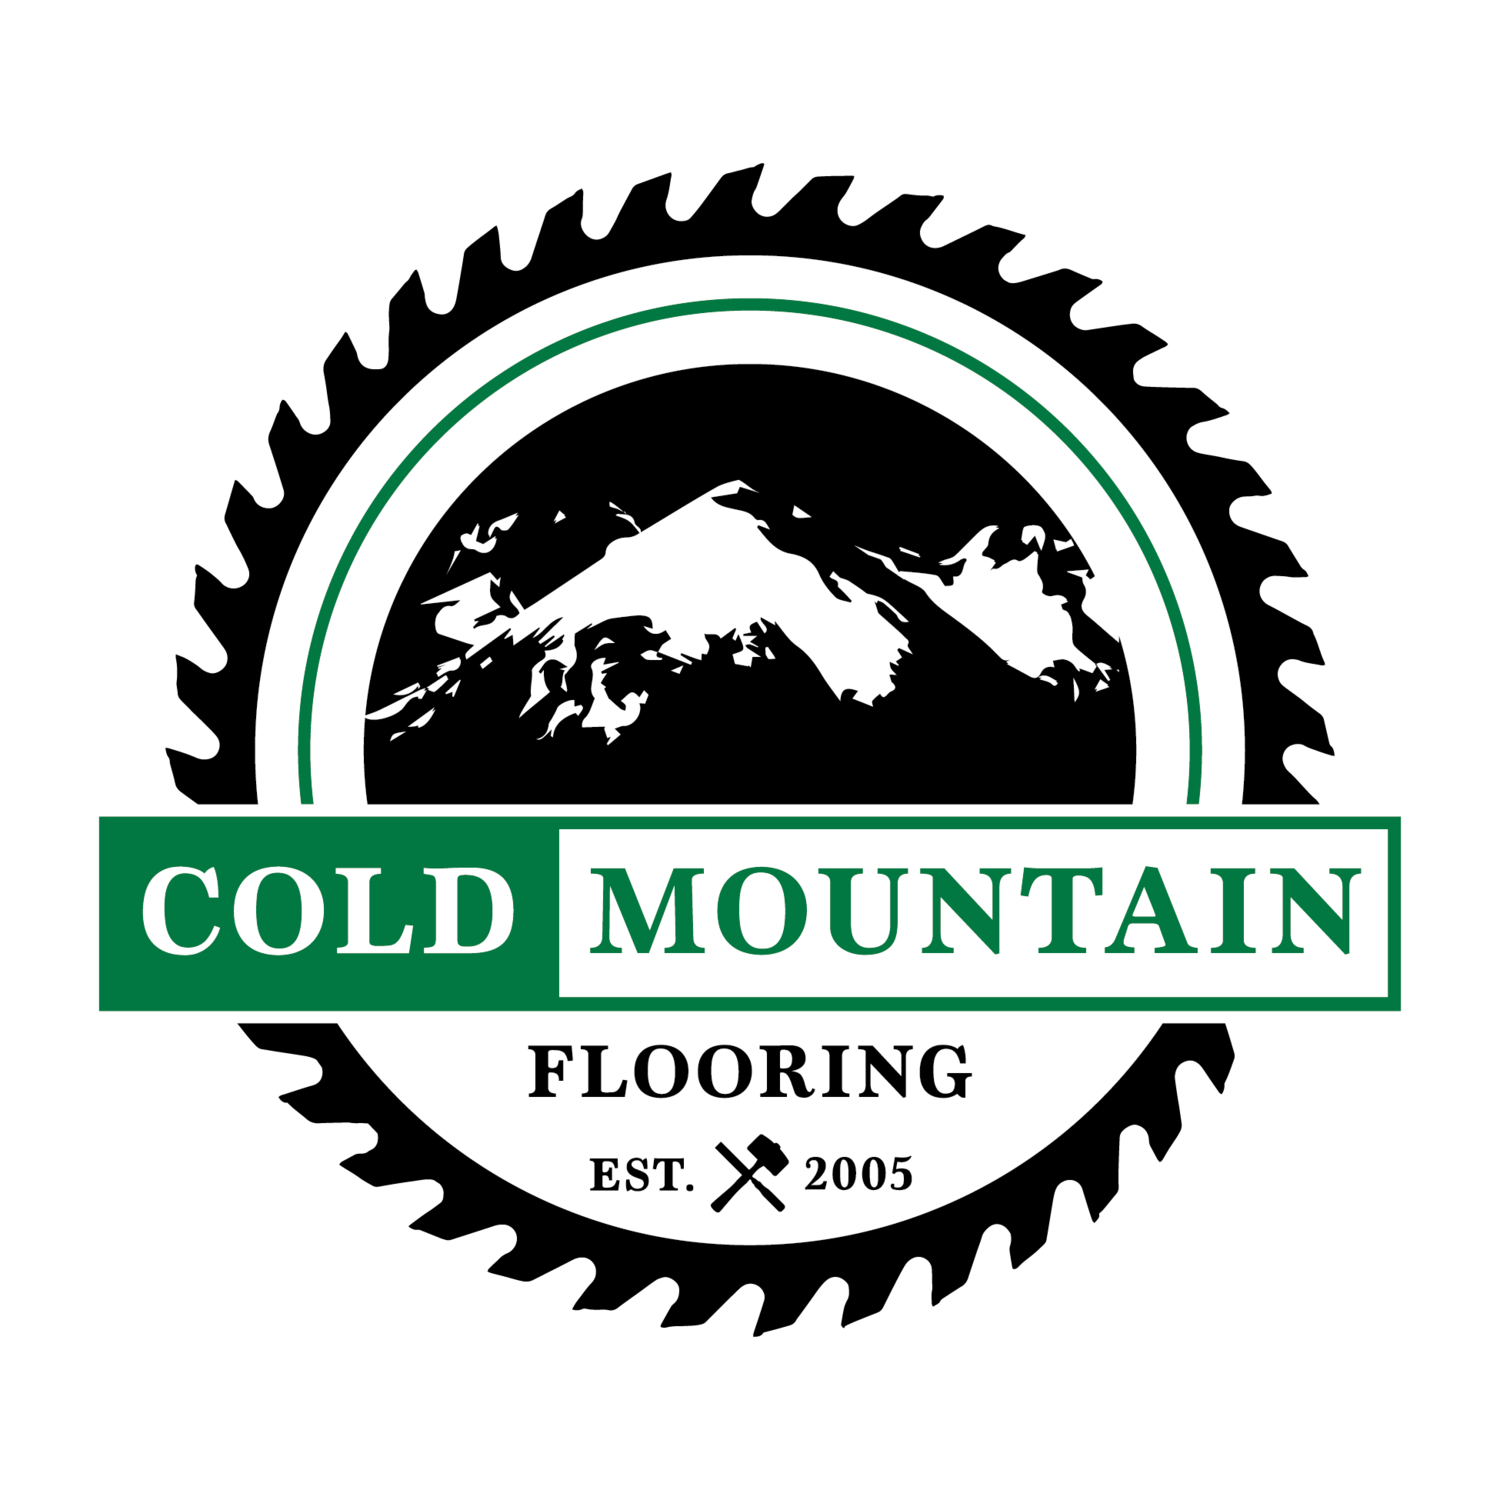 Cold Mountain Flooring